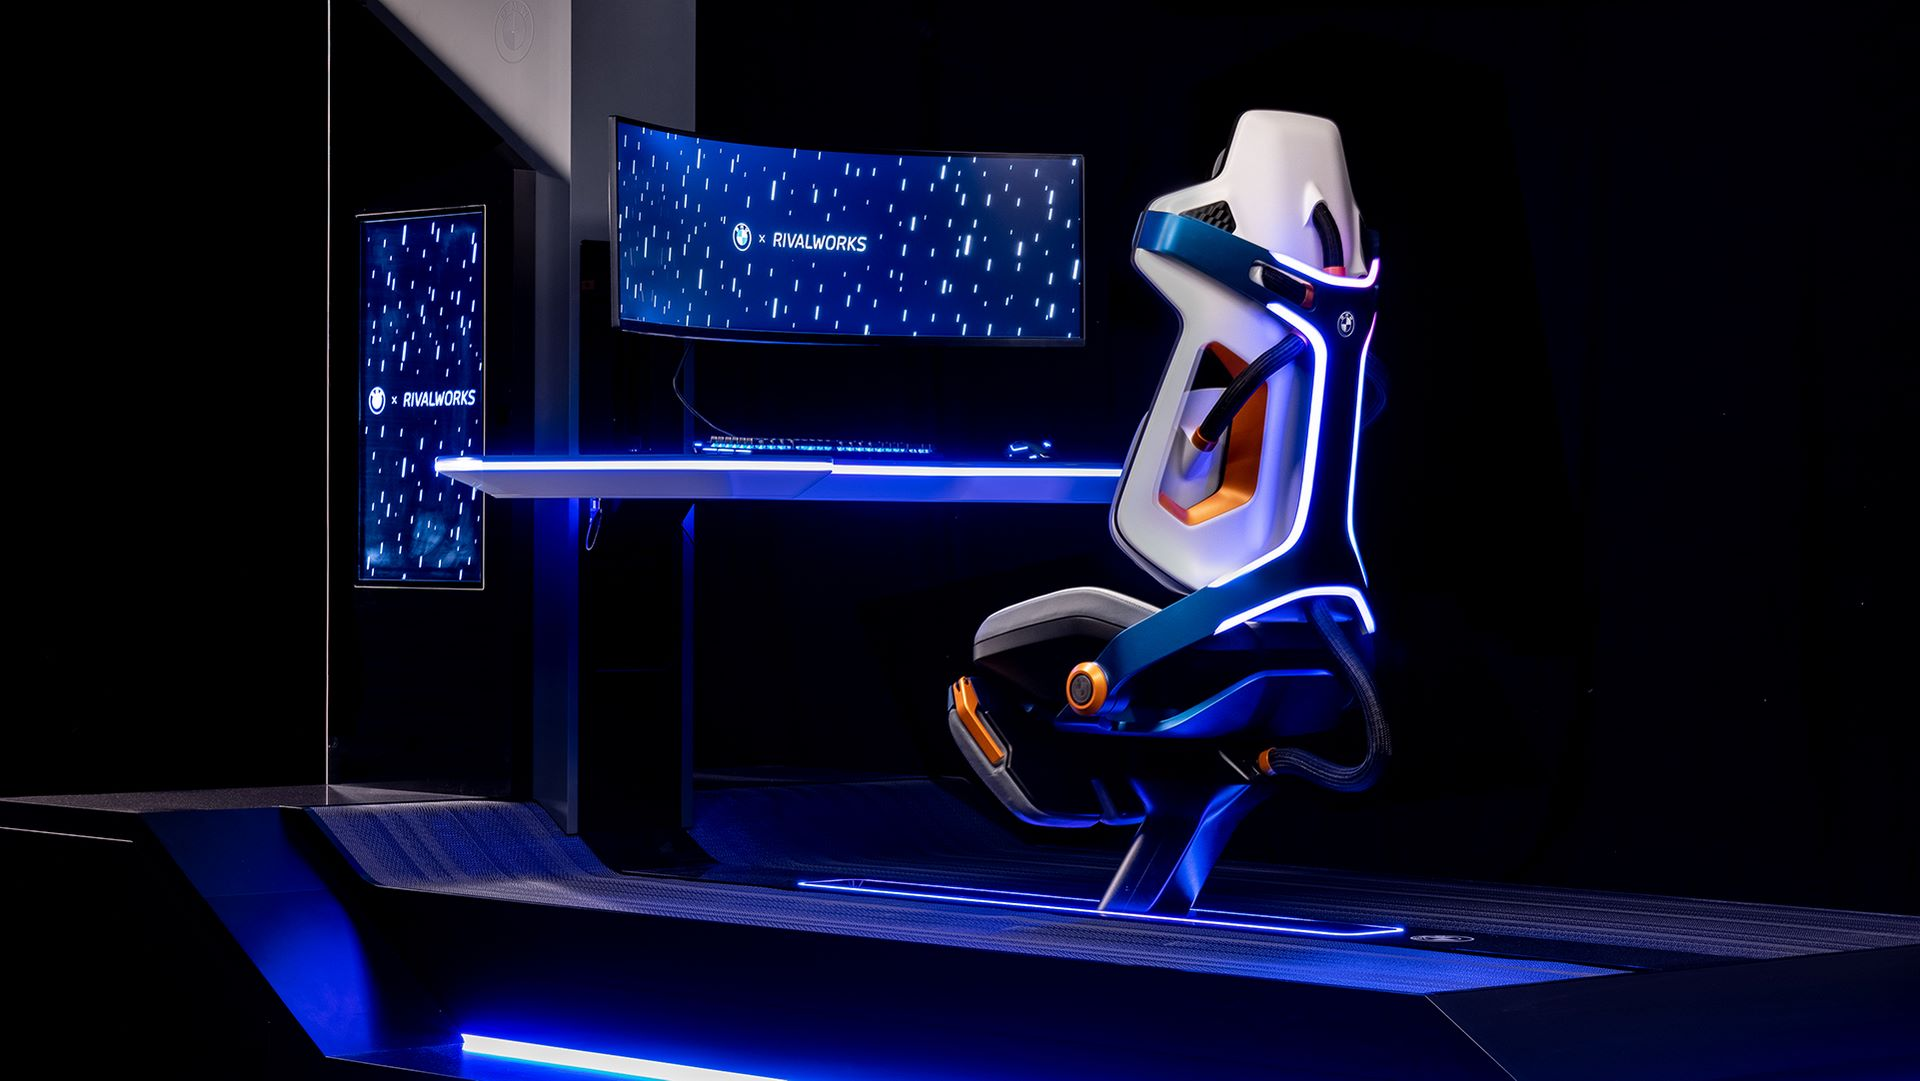 BMW-Rival-Rig-Gaming-chair-7